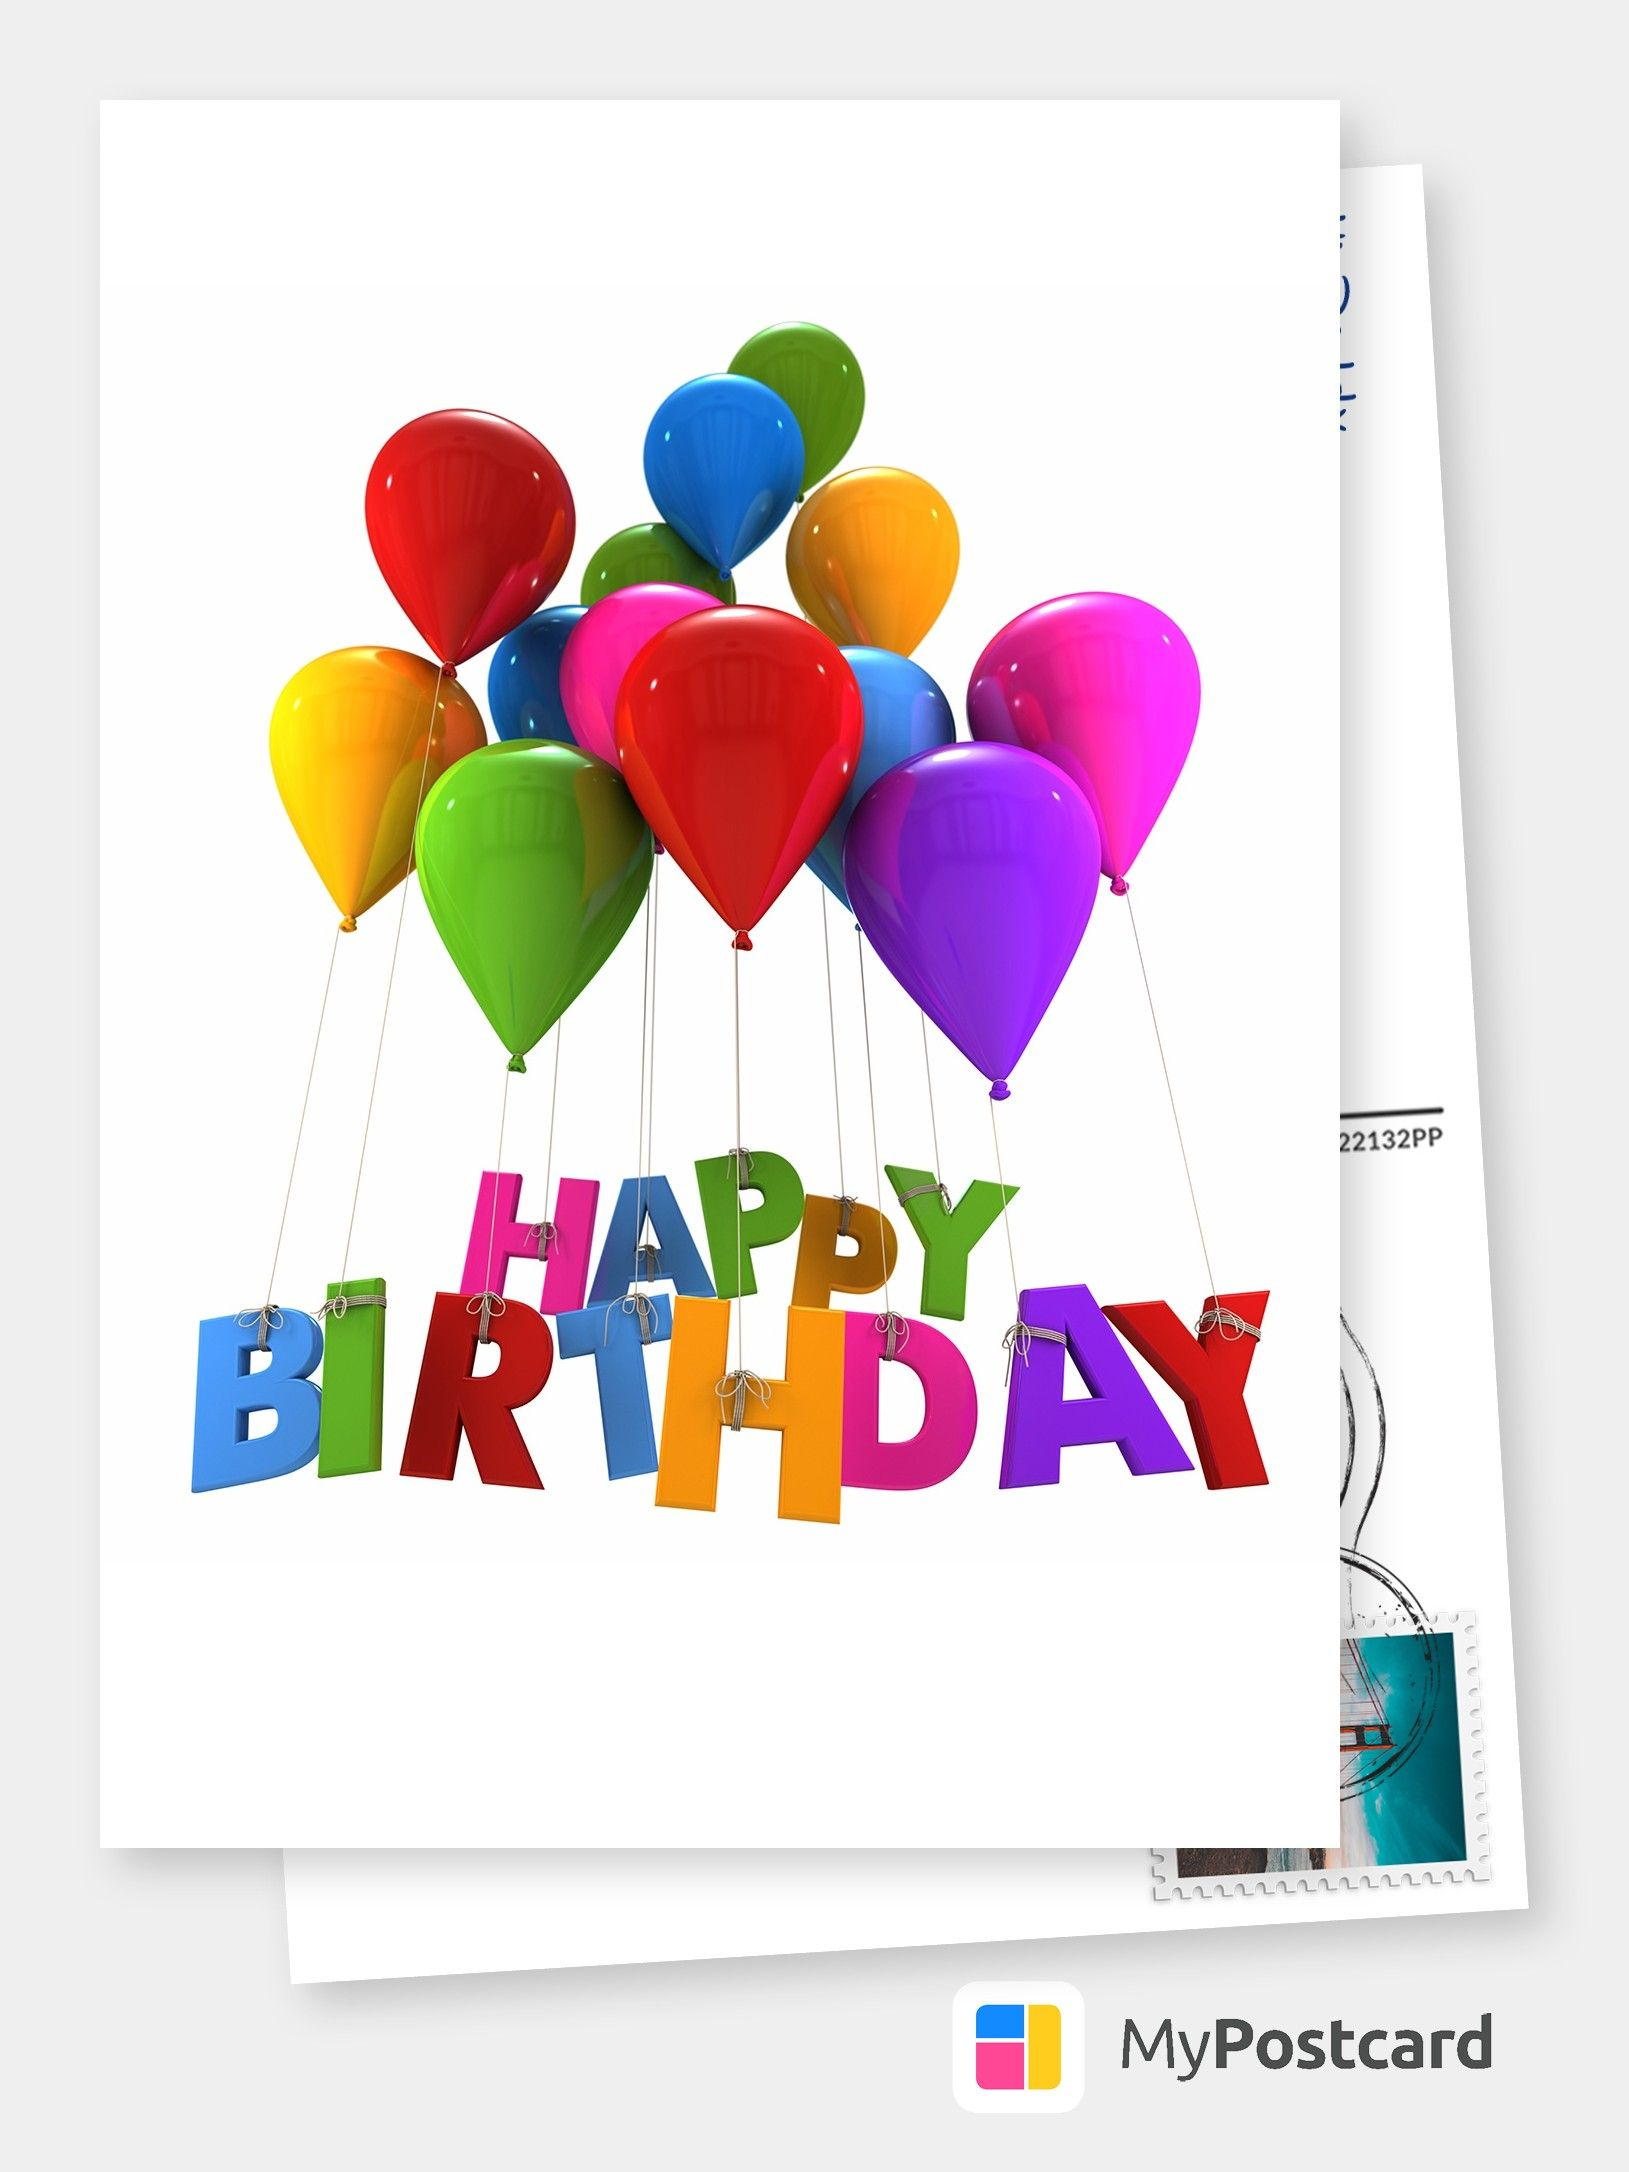 Personalized Happy Birthday Cards Online Printed Mailede For You International Free Shipping Postage Delivery Photo Cards Postcards Greeting Card Birthday Card Online Happy Birthday Cards Happy Birthday Cards Online